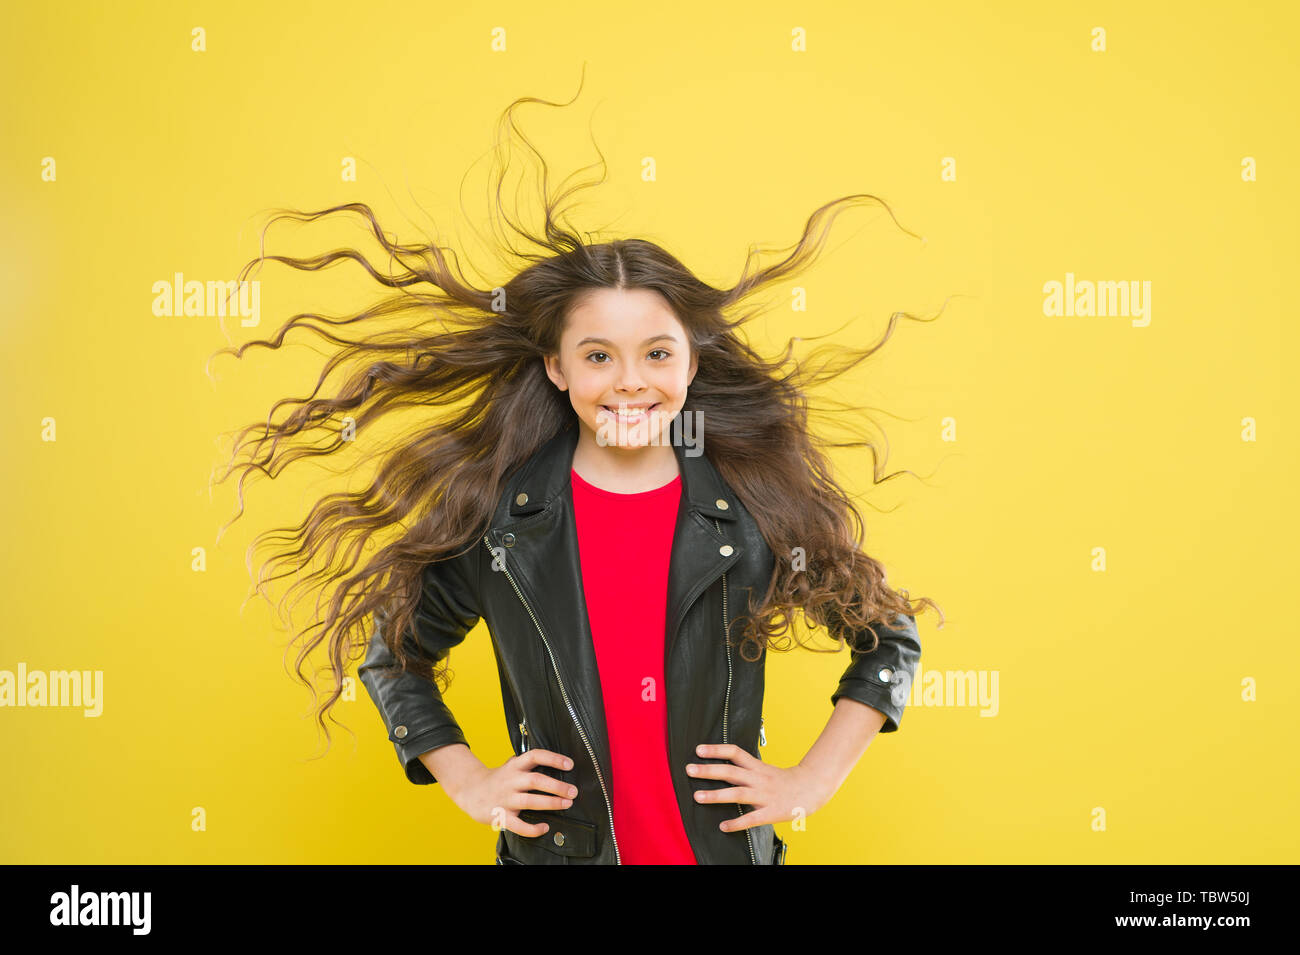 Hairdresser is a girls best friend. Cute little girl with long wavy hair happy smiling on yellow background. Kids hairdresser. Hairdresser salon for children. My hairdresser is good with her hands. - Stock Image